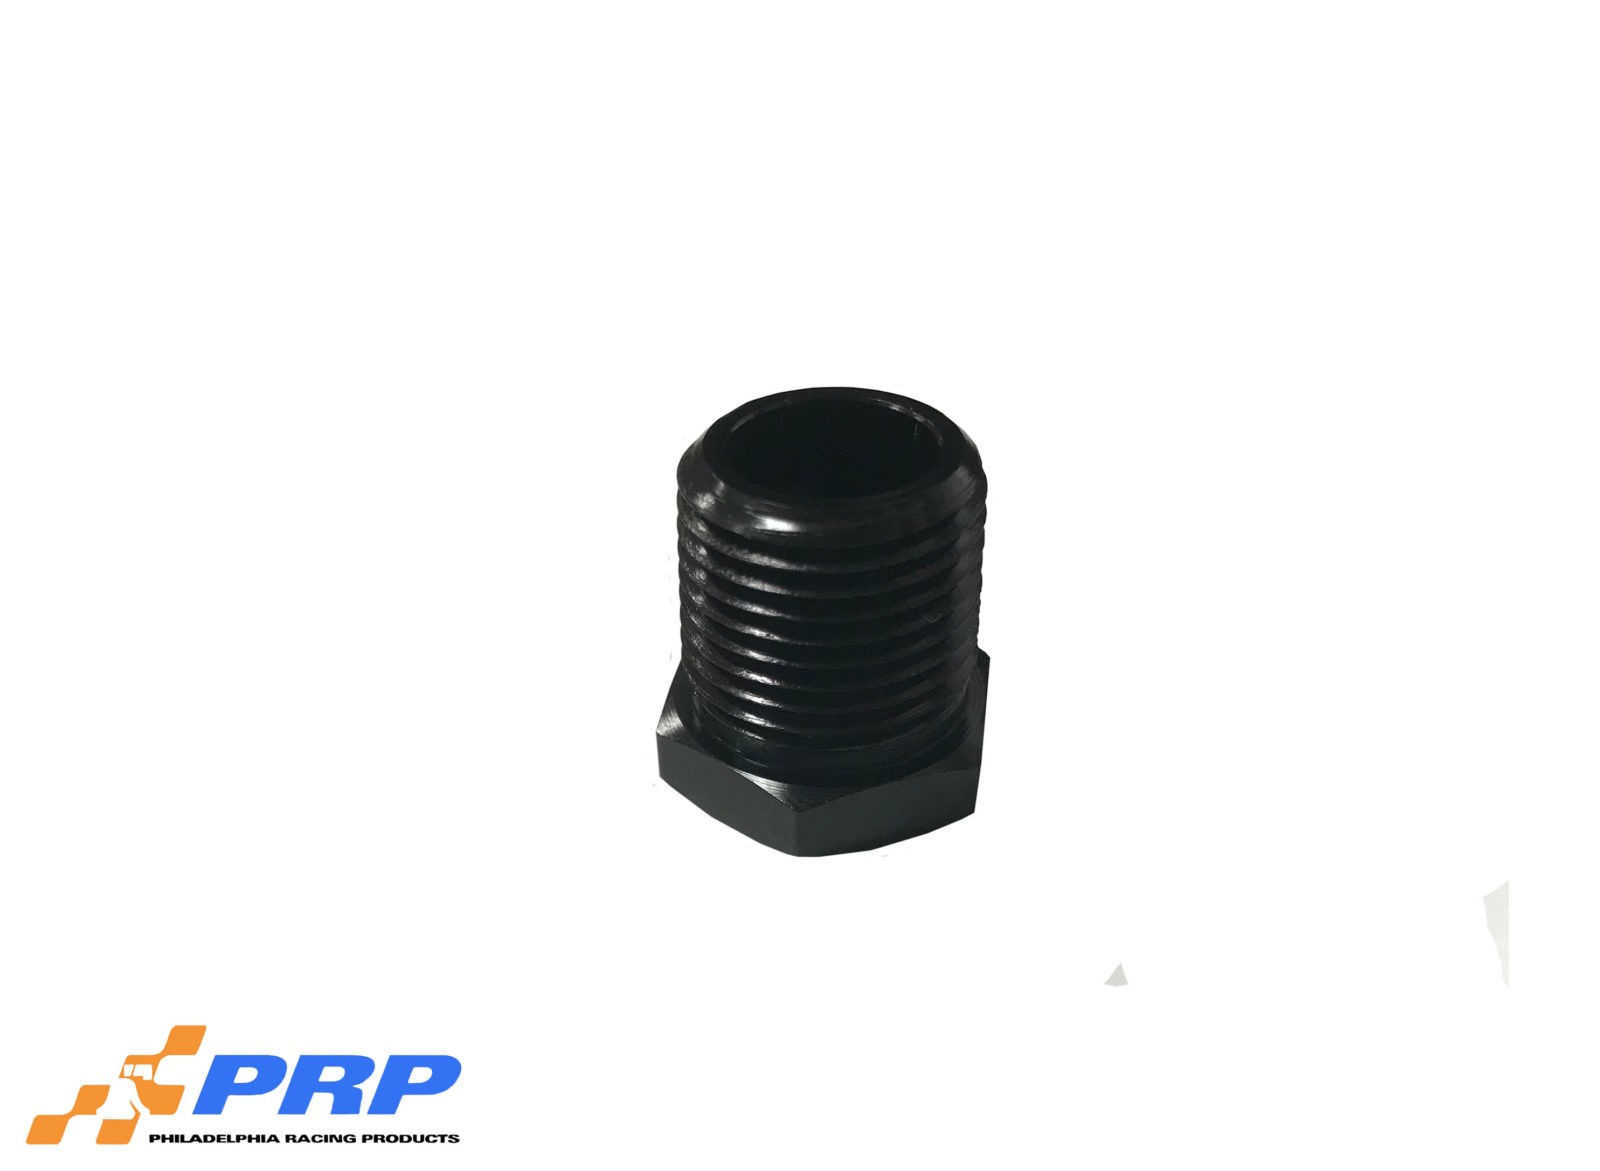 "1/2"" x 3/8"" NPT Pipe Reducer Bushing by PRP Racing Products"